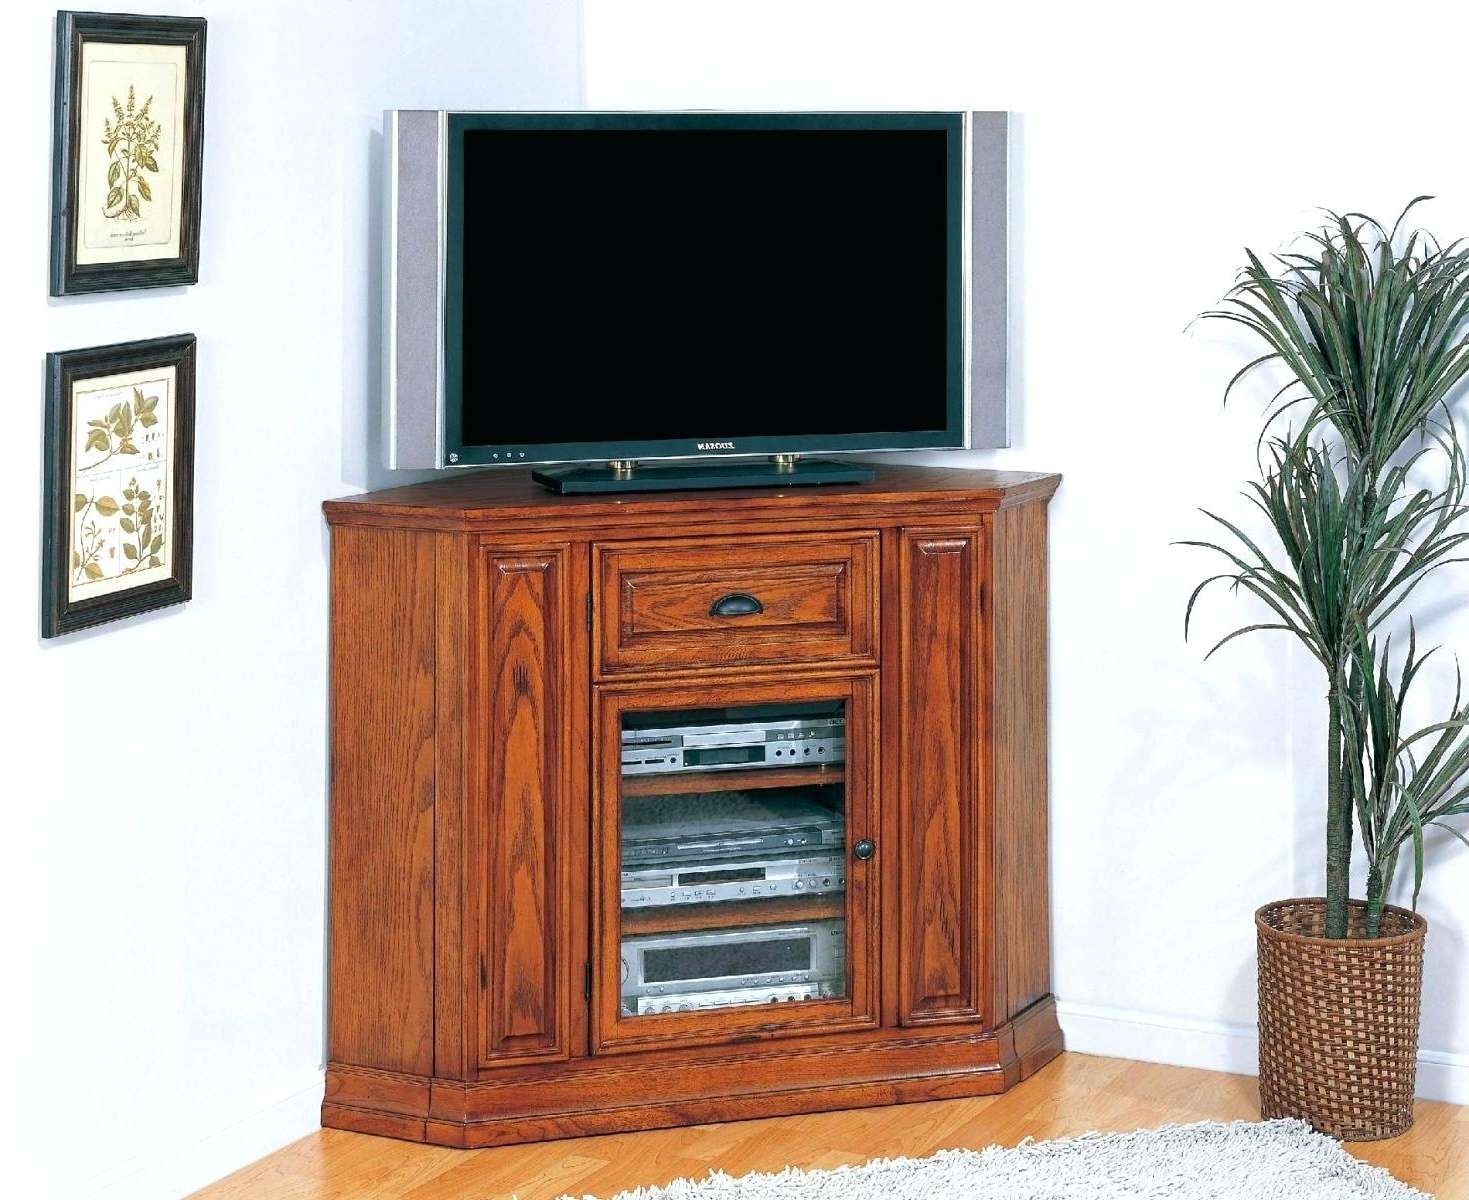 Articles With Small Tall Corner Tv Stand Tag: Tall Skinny Tv Stand With Regard To Tall Skinny Tv Stands (View 8 of 15)